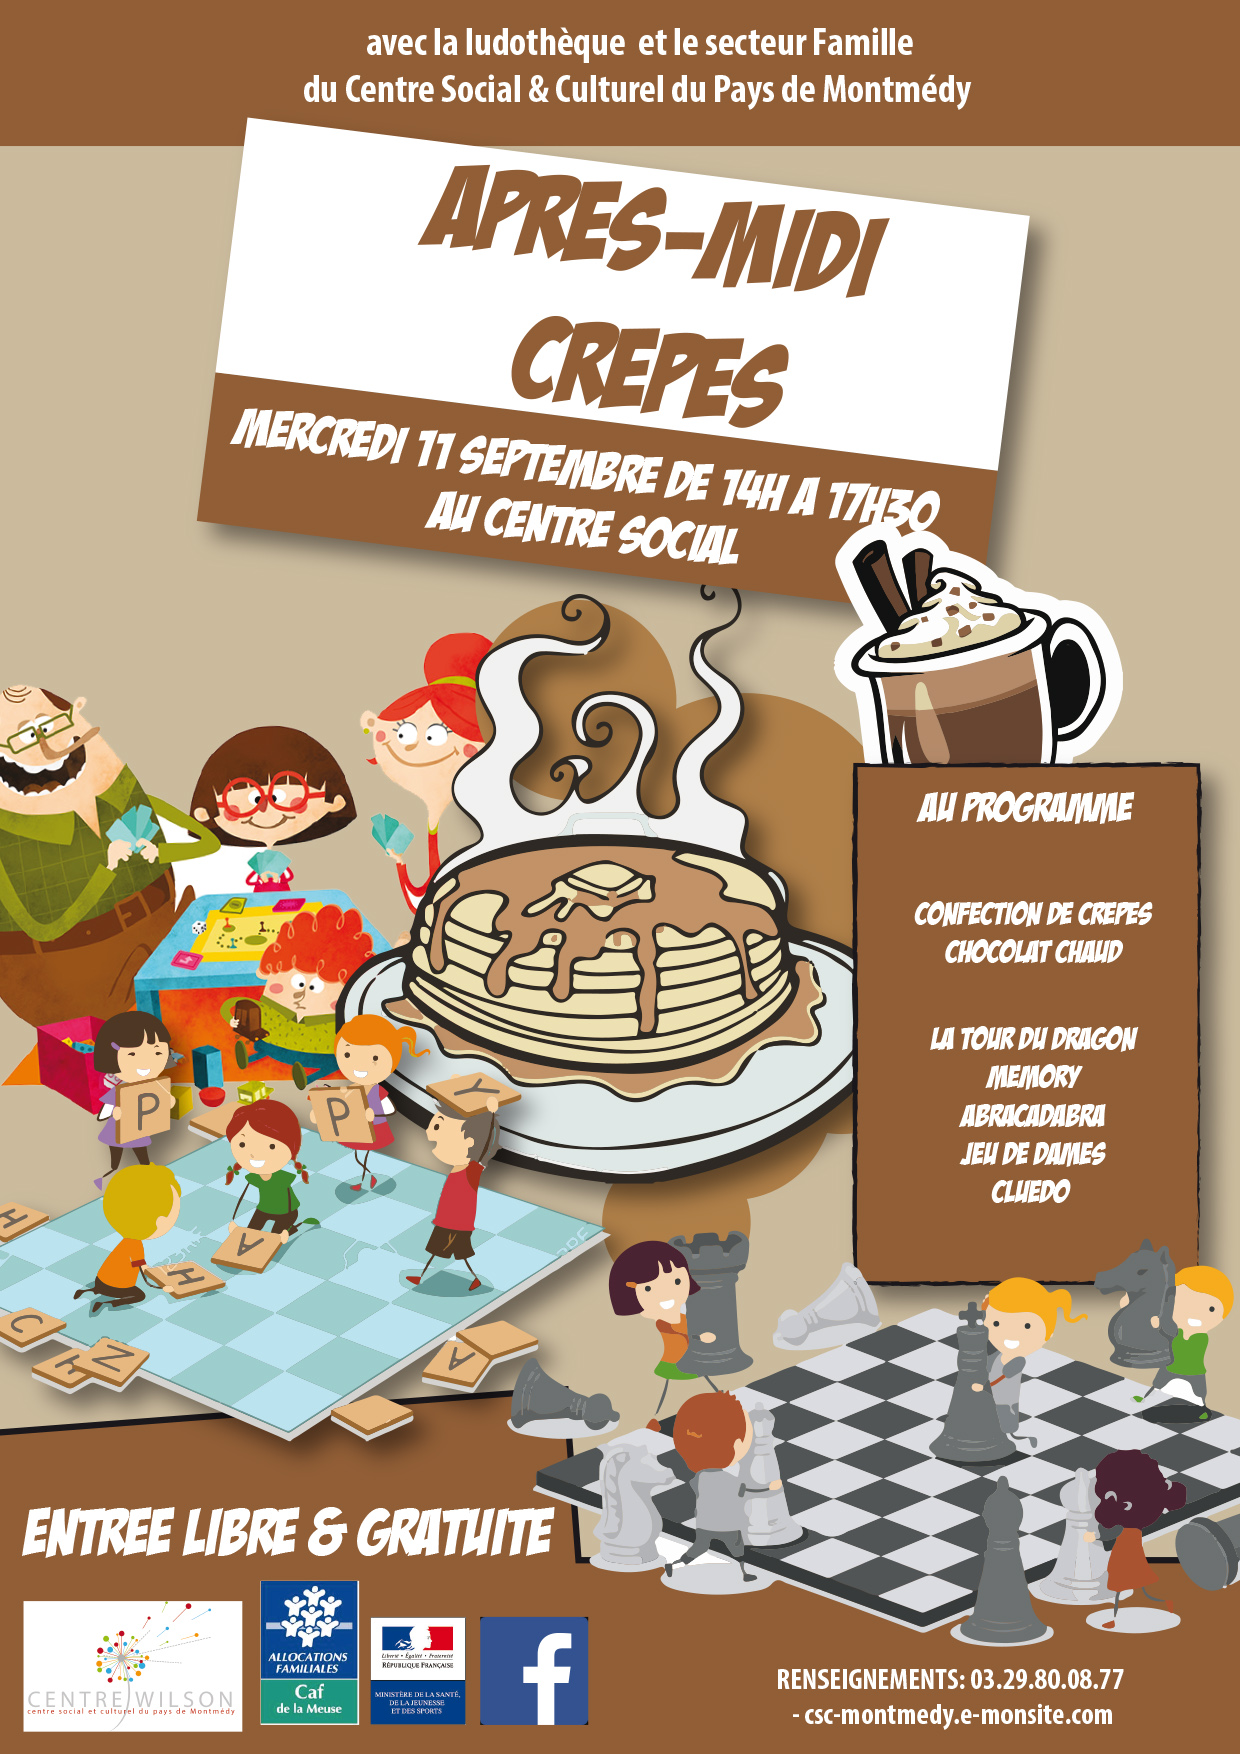 A m crepes 11 sept